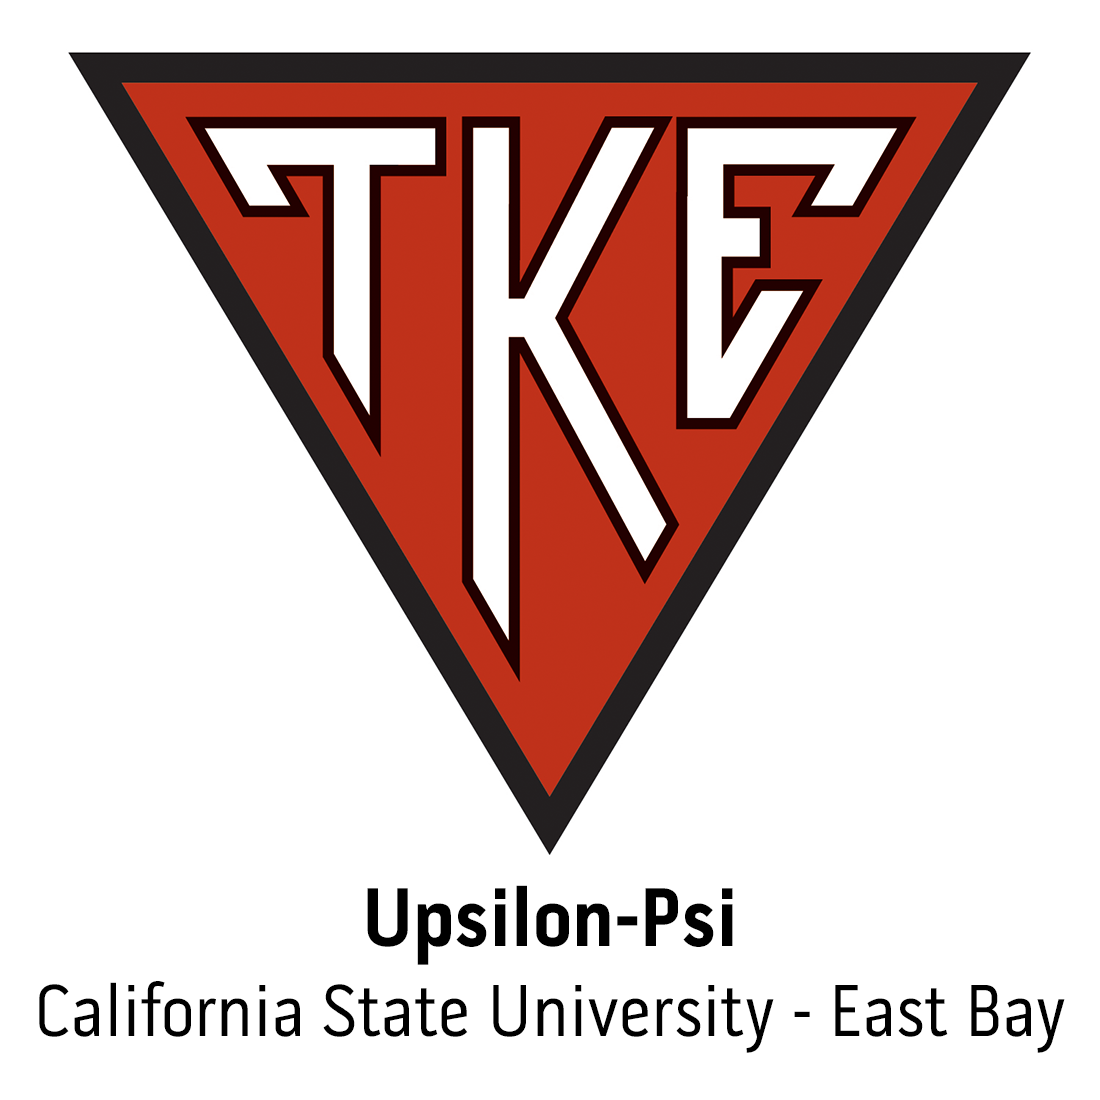 Upsilon-Psi Chapter at California State University-East Bay